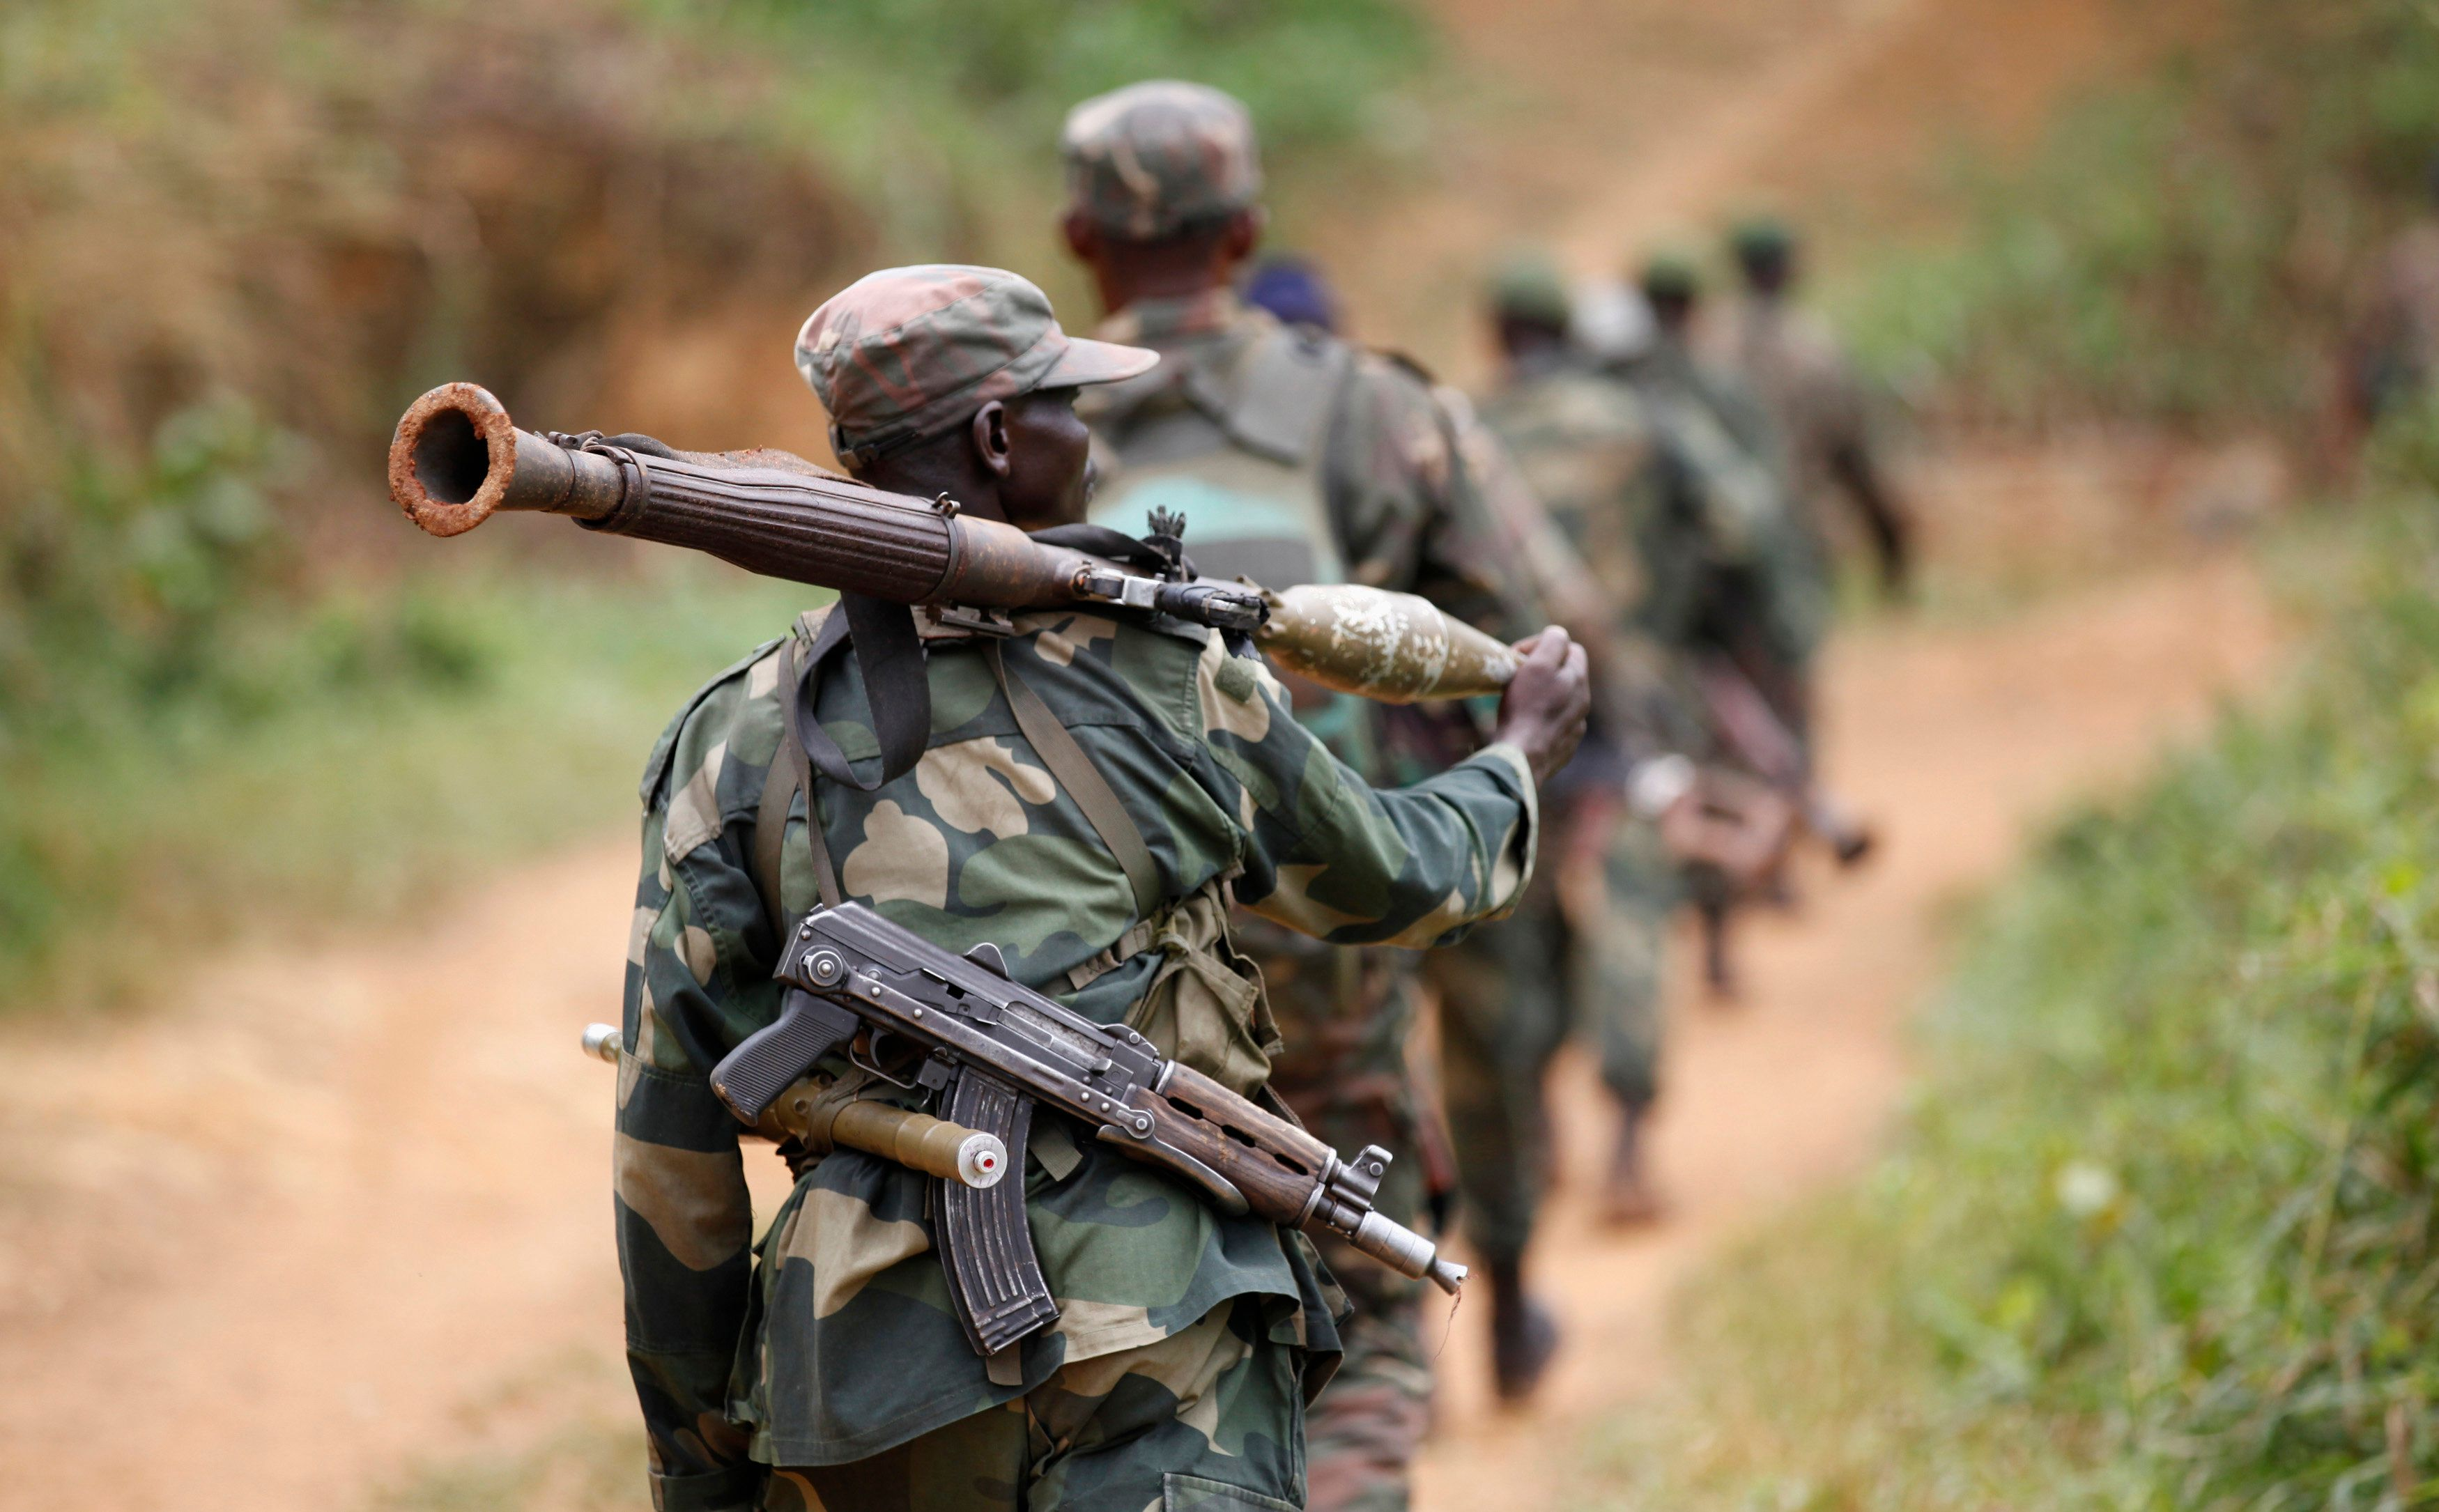 Democratic Republic of Congo military personnel (FARDC) patrol against the Allied Democratic Forces (ADF) and the National Army for the Liberation of Uganda (NALU) rebels near Beni in North-Kivu province, December 31, 2013. The Democratic Republic of Congo is struggling to emerge from decades of violence and instability, particularly in its east, in which millions of people have died, mostly from hunger and disease. A 21,000-strong United Nations peacekeeping mission (MONUSCO) is stationed in the country. REUTERS/Kenny Katombe (DEMOCRATIC REPUBLIC OF CONGO - Tags: POLITICS CIVIL UNREST CONFLICT MILITARY)